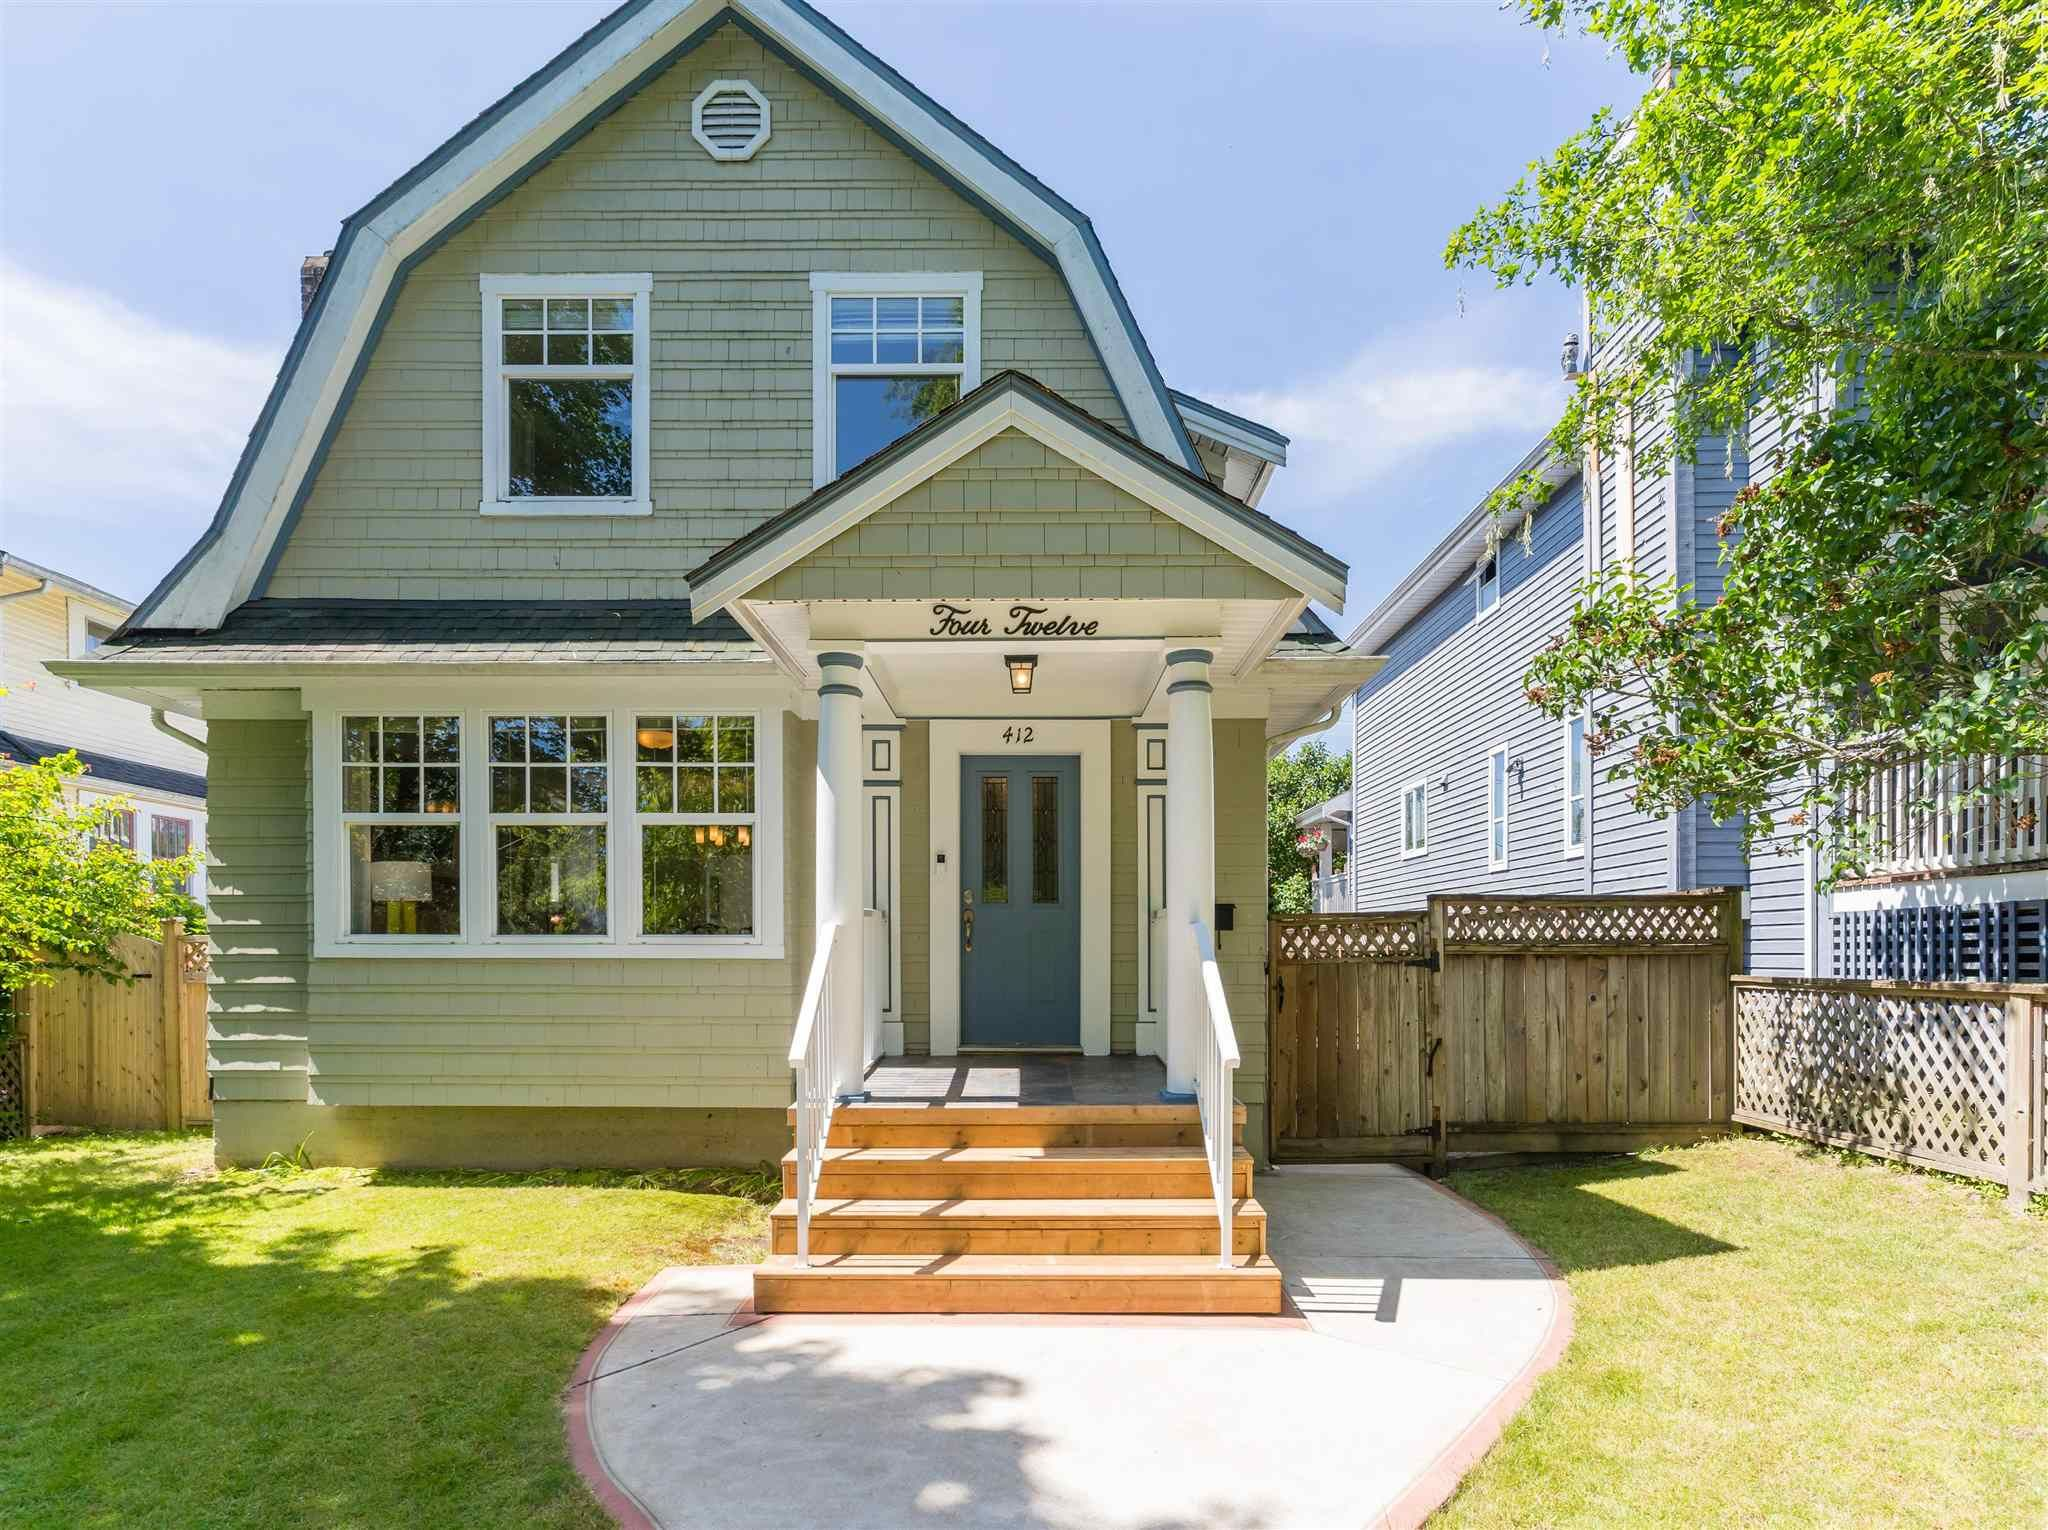 Photo 1: Photos: 412 FIFTH STREET in New Westminster: Queens Park House for sale : MLS®# R2594885